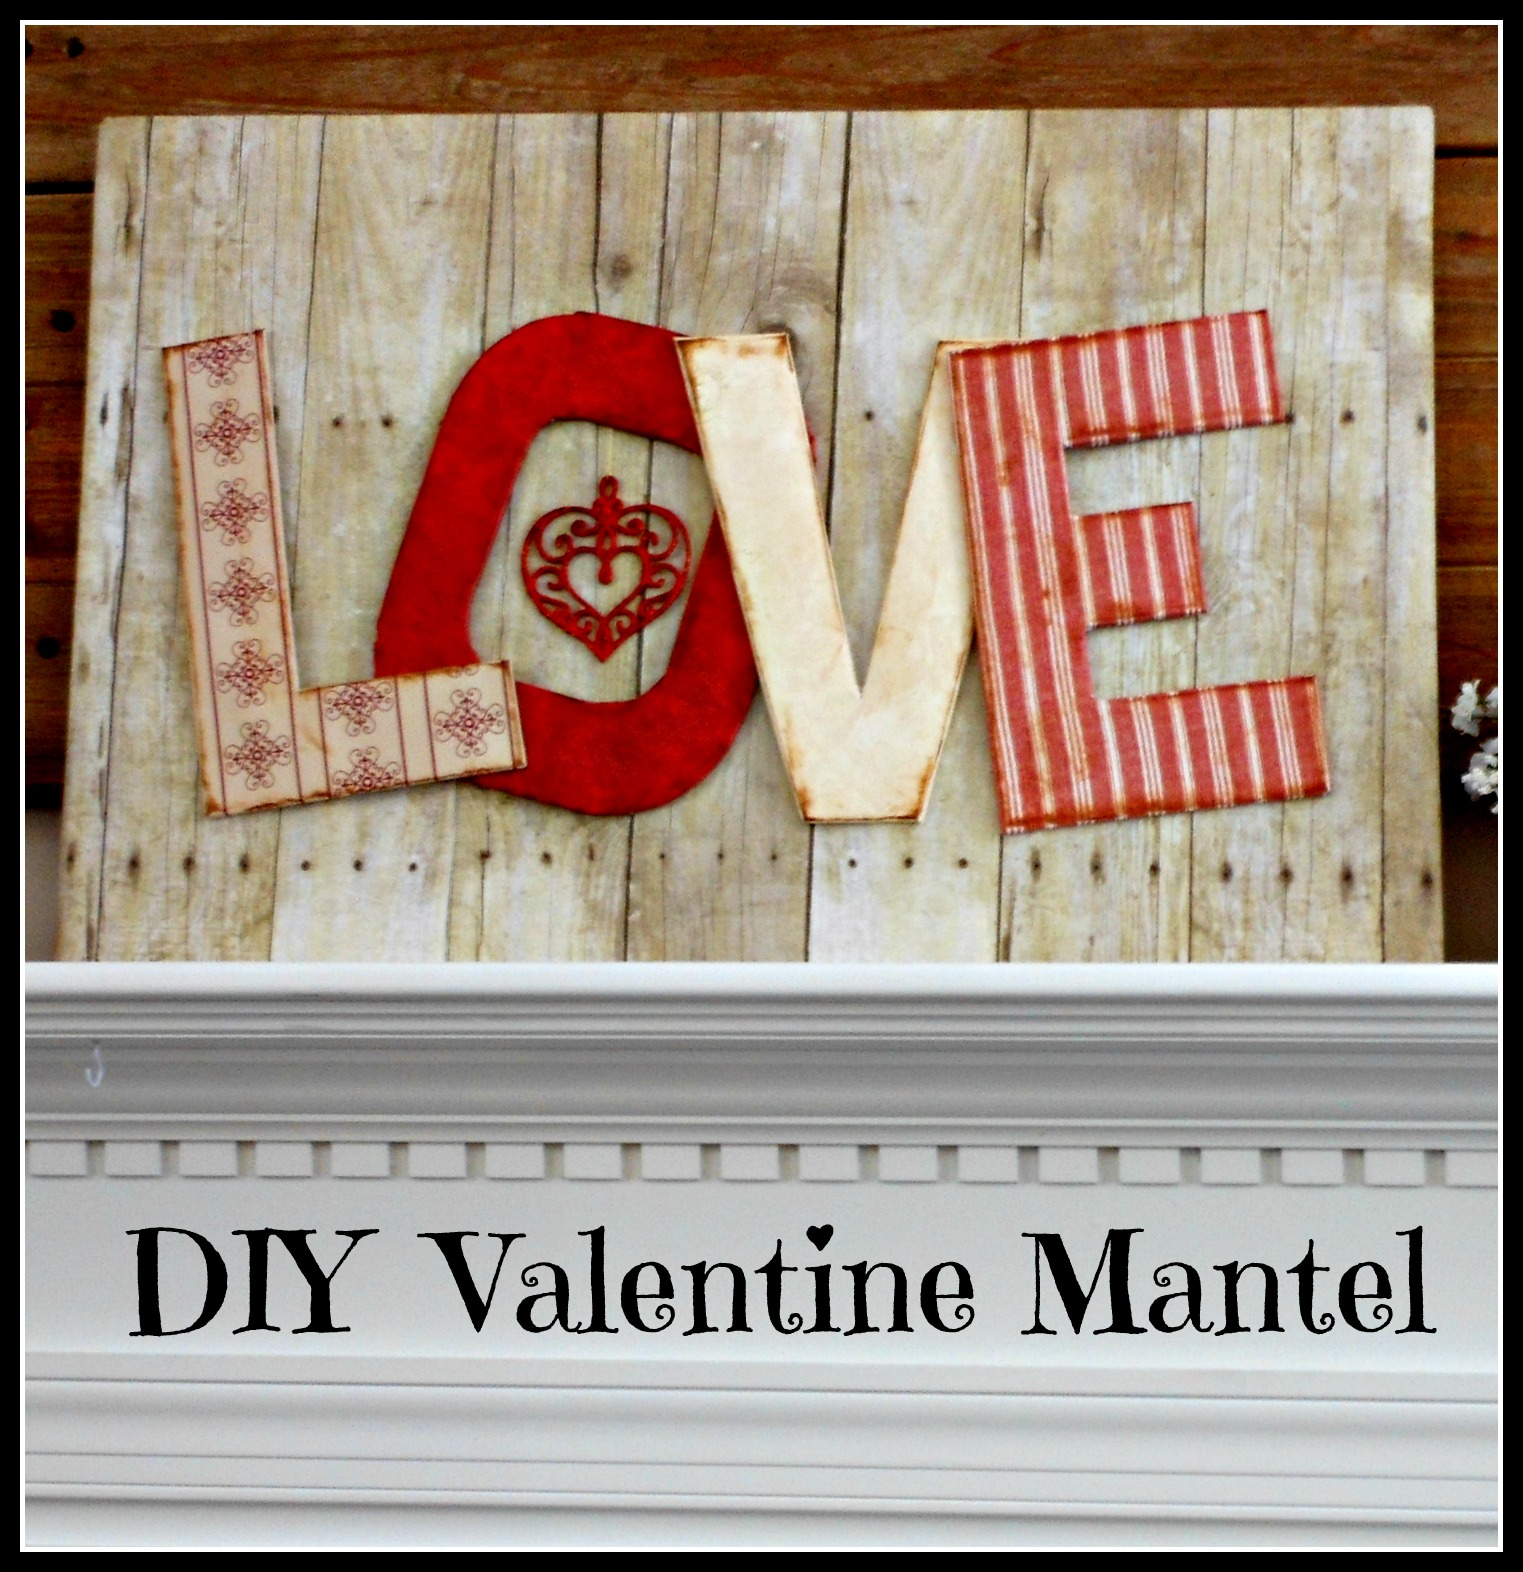 a simple budget friendly Valentine mantel DIY'd with scrapbook paper LOVE sign